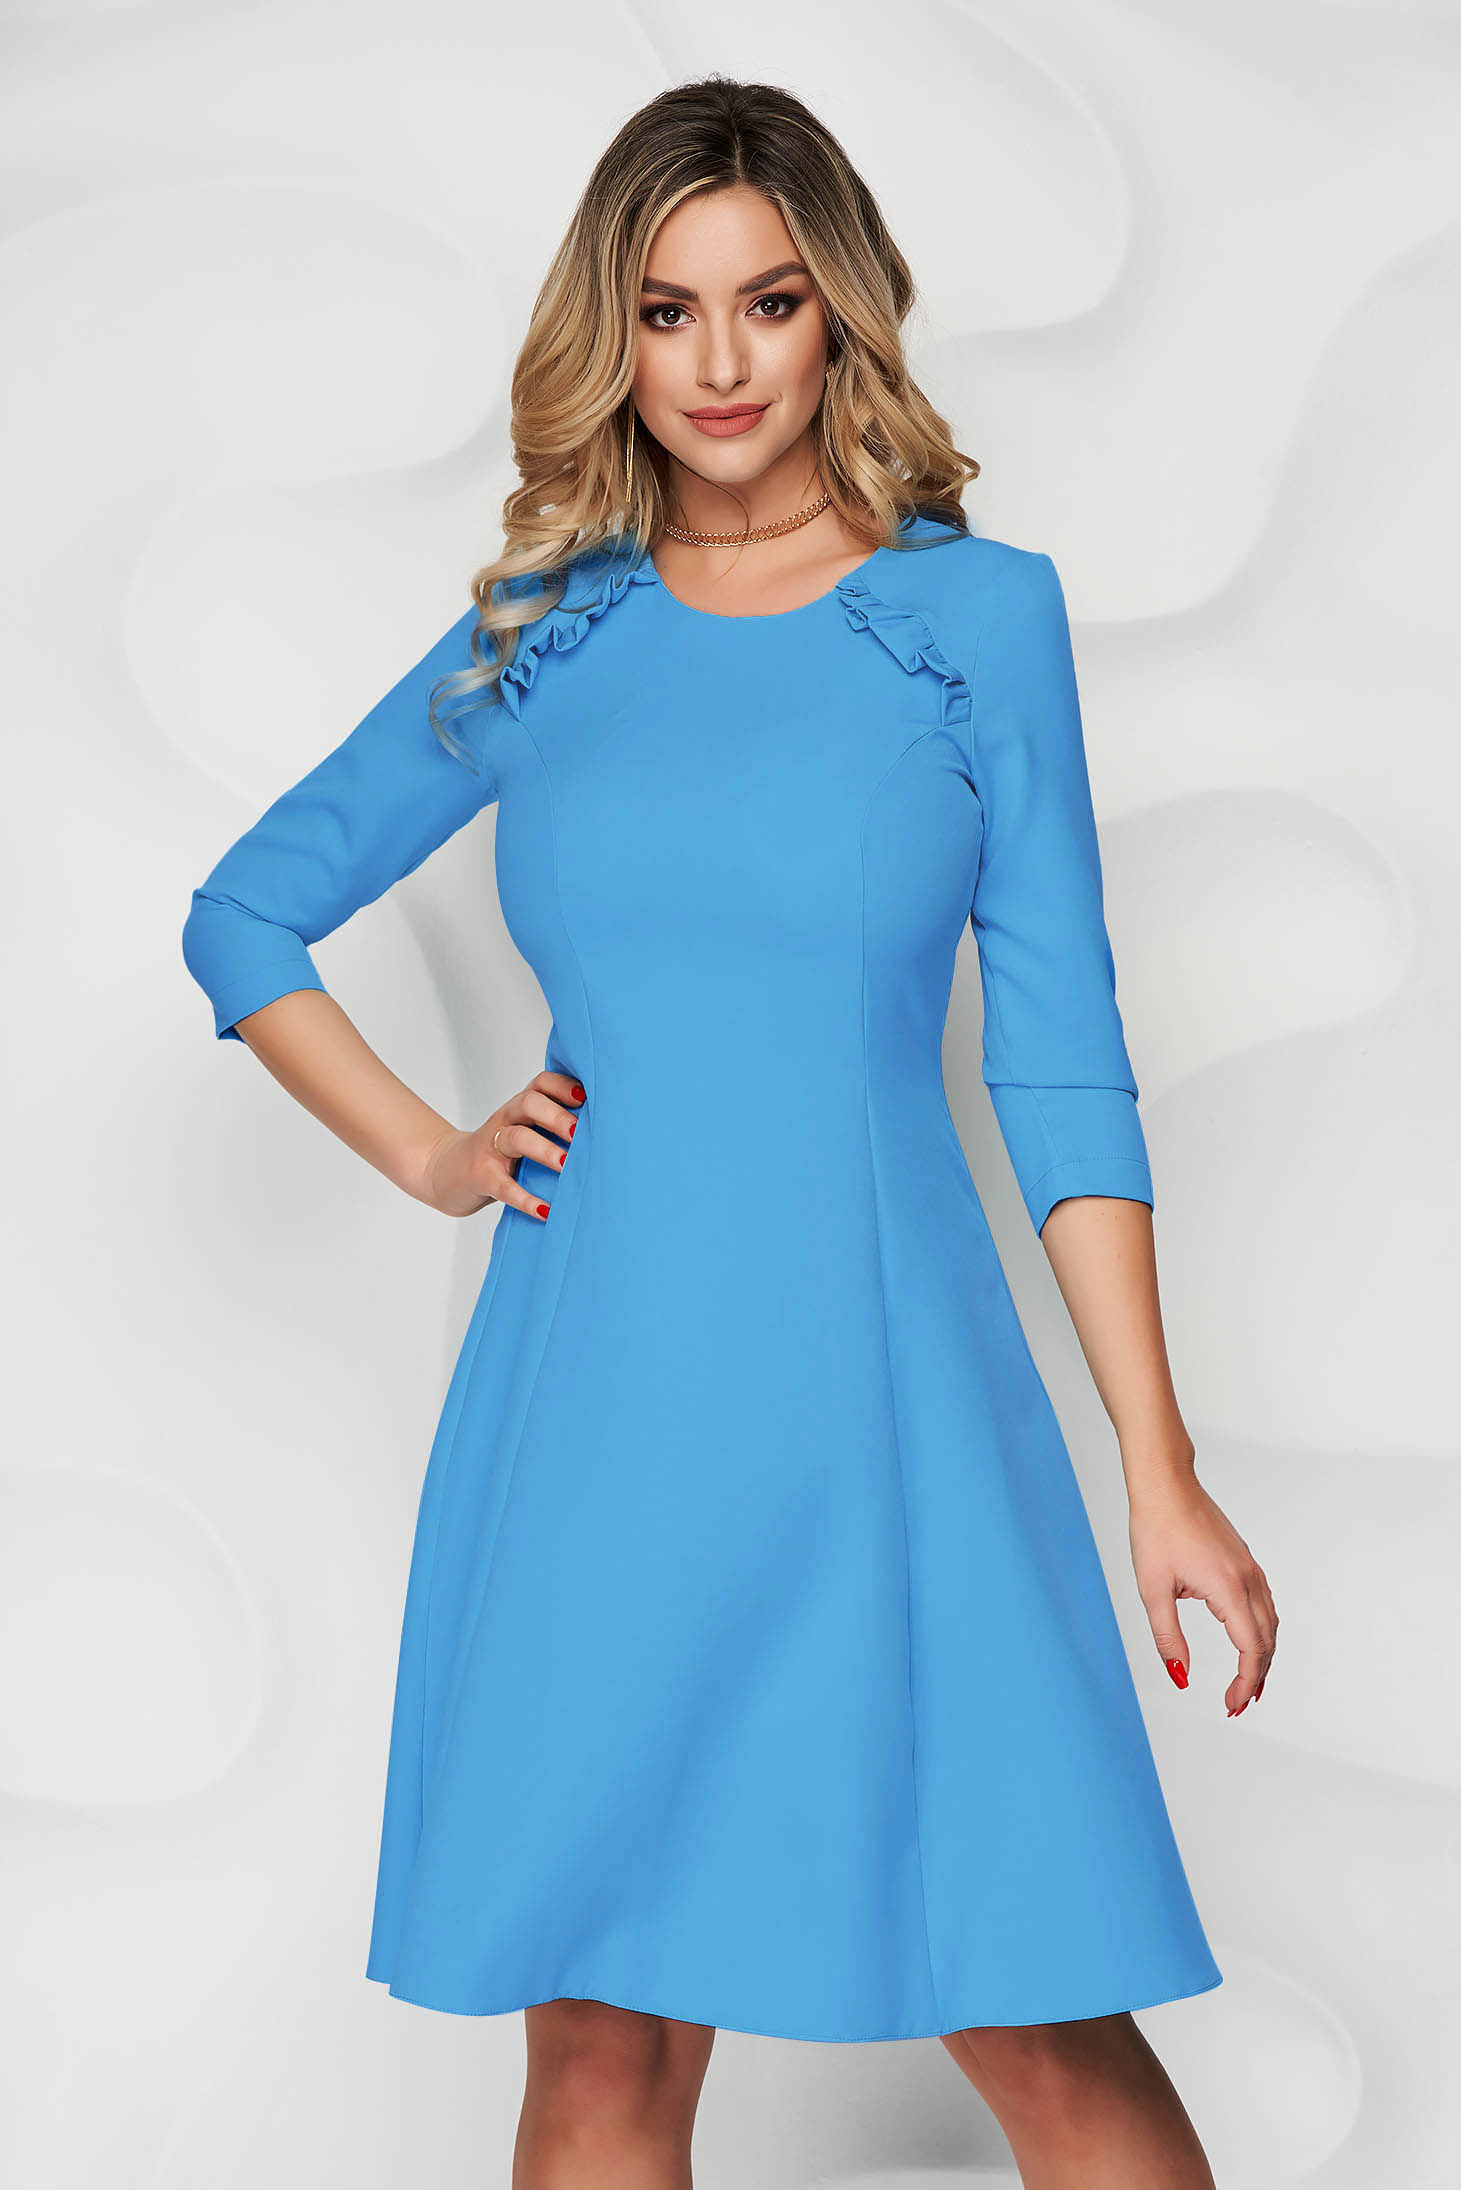 StarShinerS blue office midi cloche dress slightly elastic fabric with ruffle details